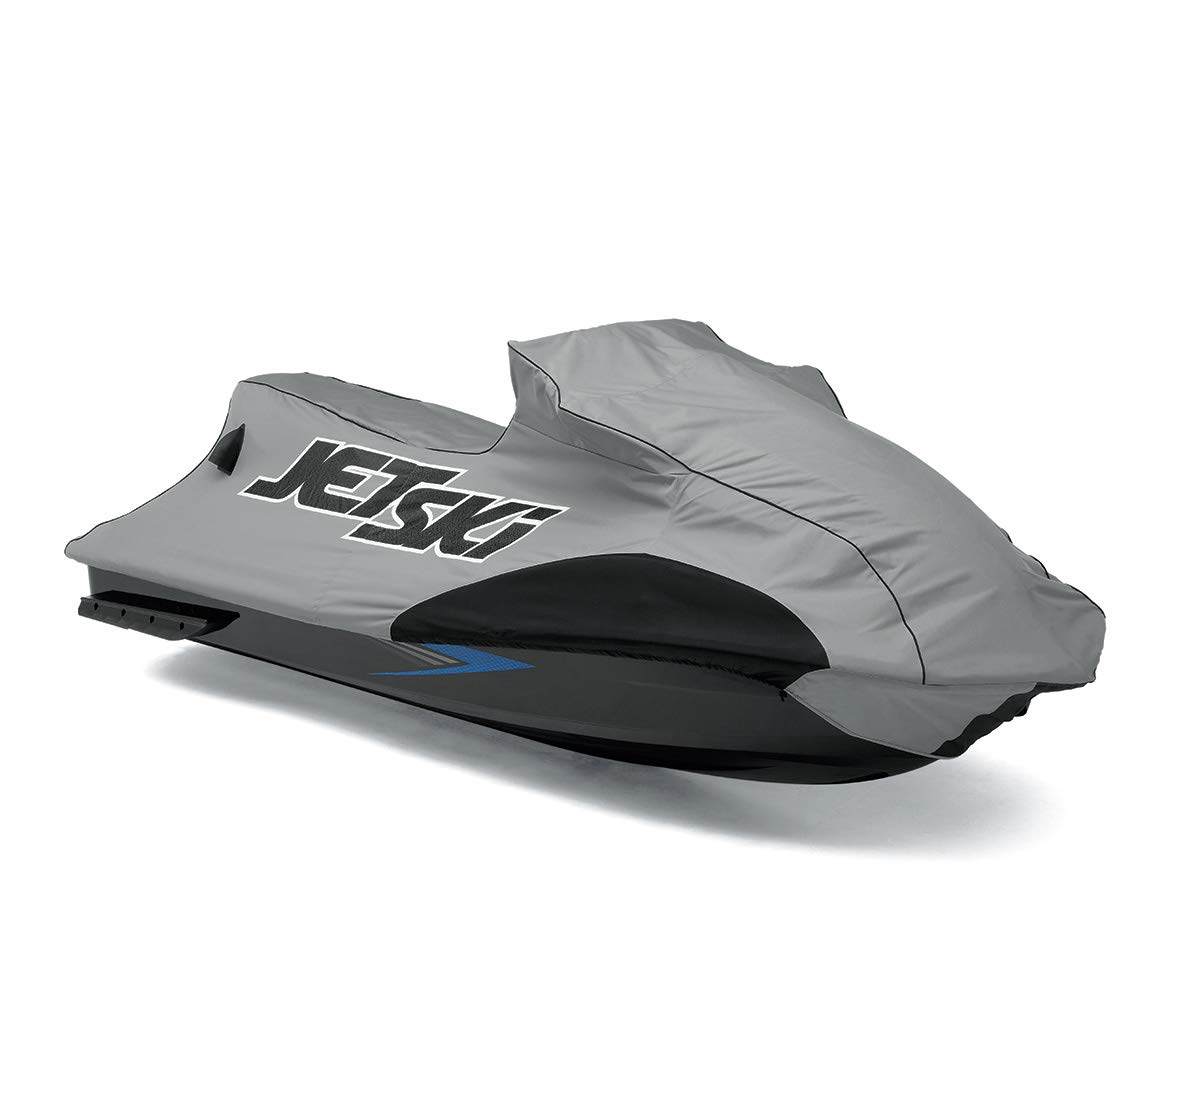 hot sale online 954f0 e5f15 Best Jet Ski Covers to Buy 2019 - Auto Quarterly